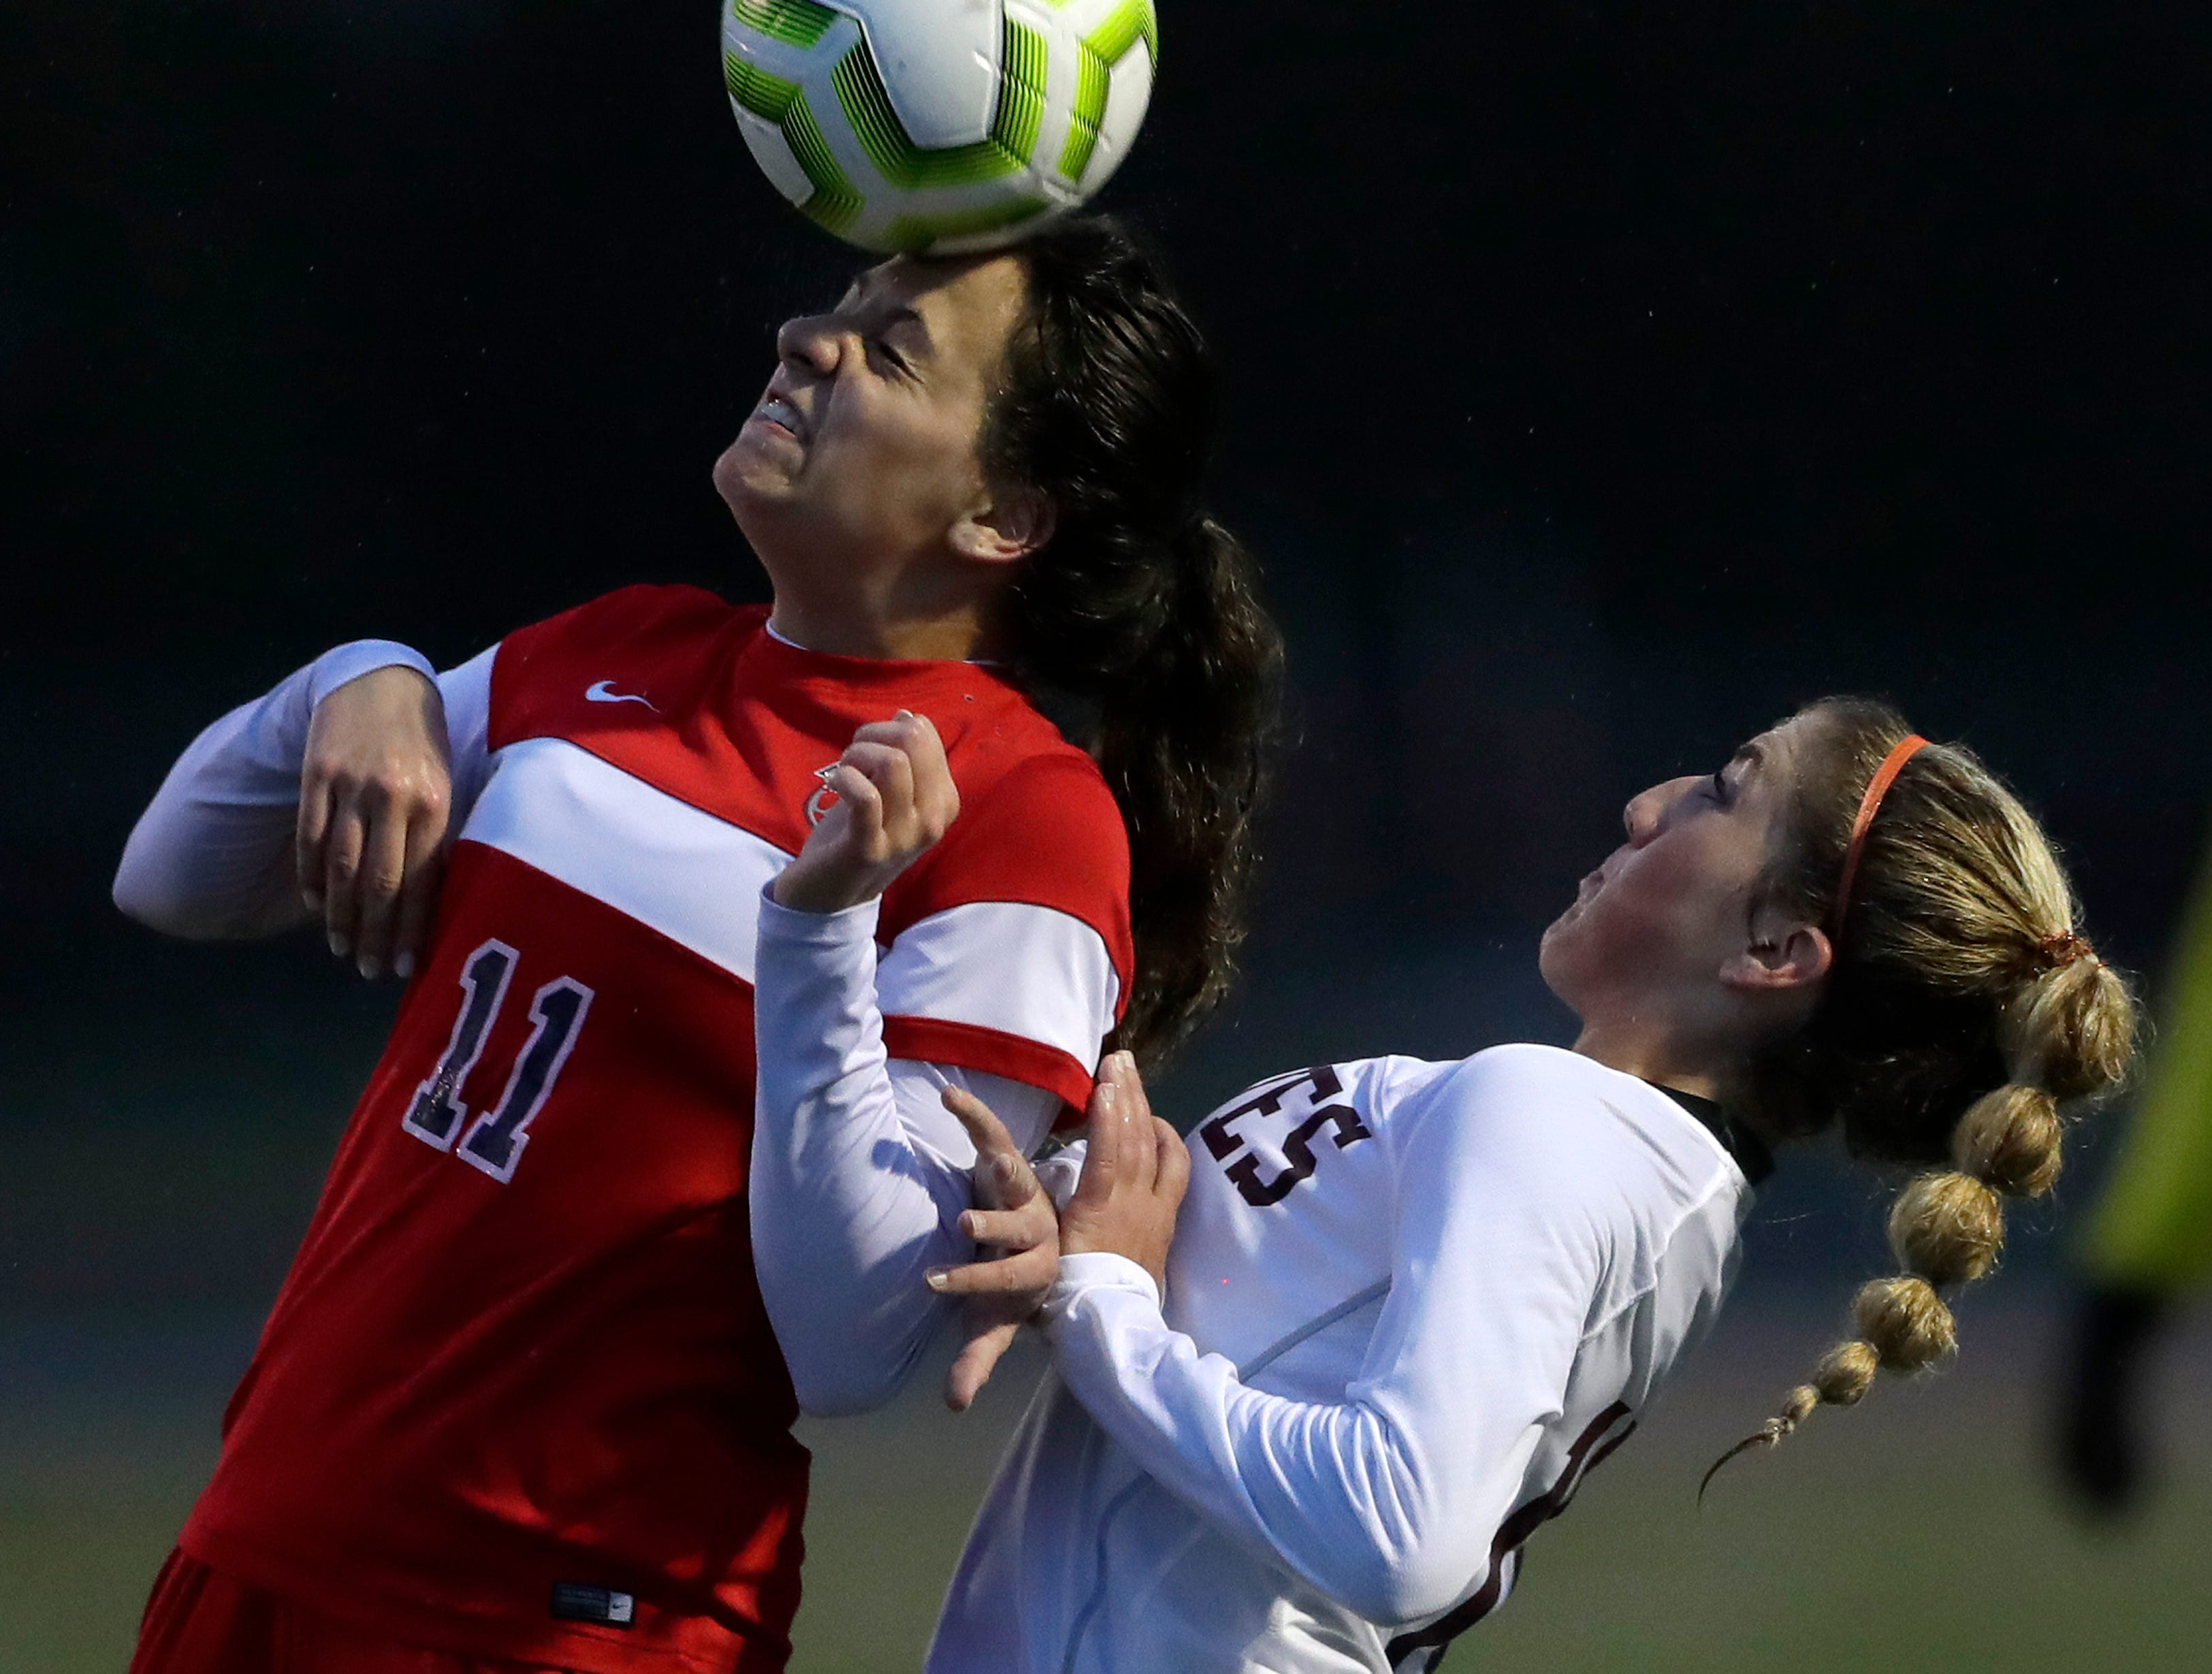 Appleton East High School's Marisa Triggiano (11) heads the ball against Winneconne High School's Alexandra Pascarella (16) during their girls soccer game Thursday, April 25, 2019, in Appleton, Wis. 